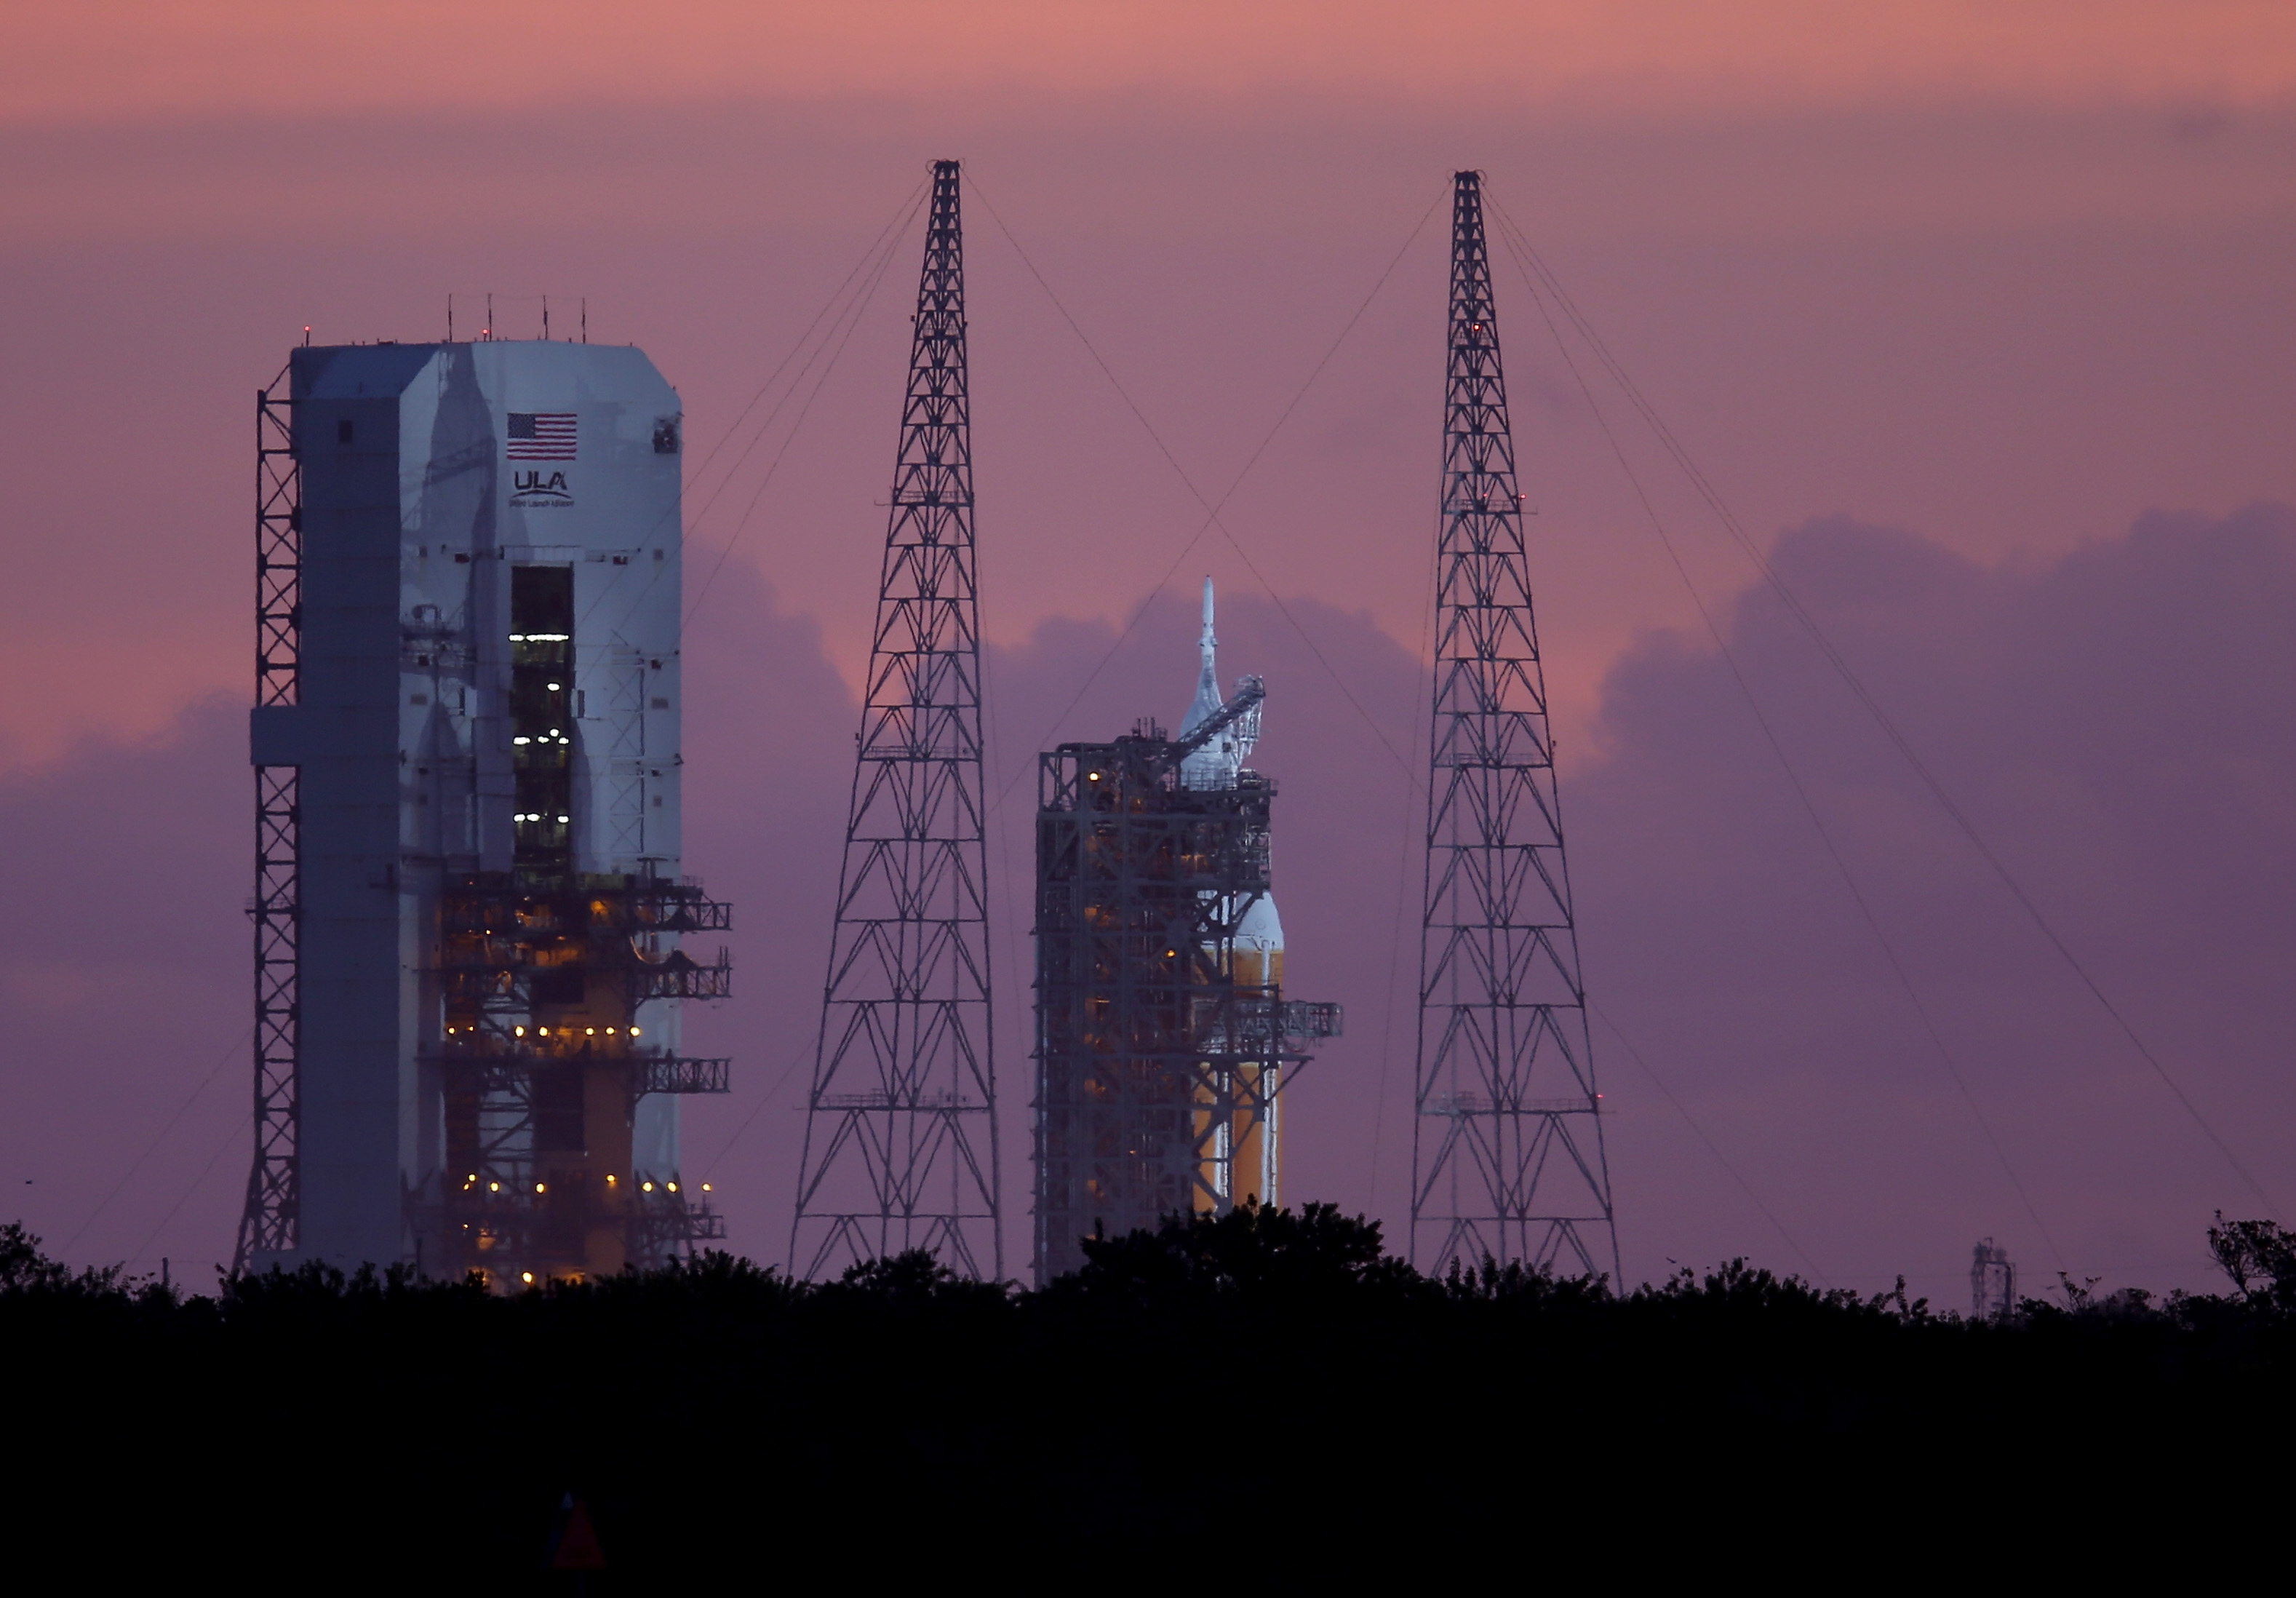 The United Launch Alliance Delta 4 rocket carrying NASA's first Orion deep space exploration craft is seen on its launch pad before the mornings mission was scrubbed on December 4, 2014 in Cape Canaveral, Florida.  The heavy-lift rocket will boost the unmanned Orion capsule to an altitude of 3,600 miles, and returning for a splashdown west of Baja California after a four and half hour flight.  (Photo by Joe Raedle/Getty Images)